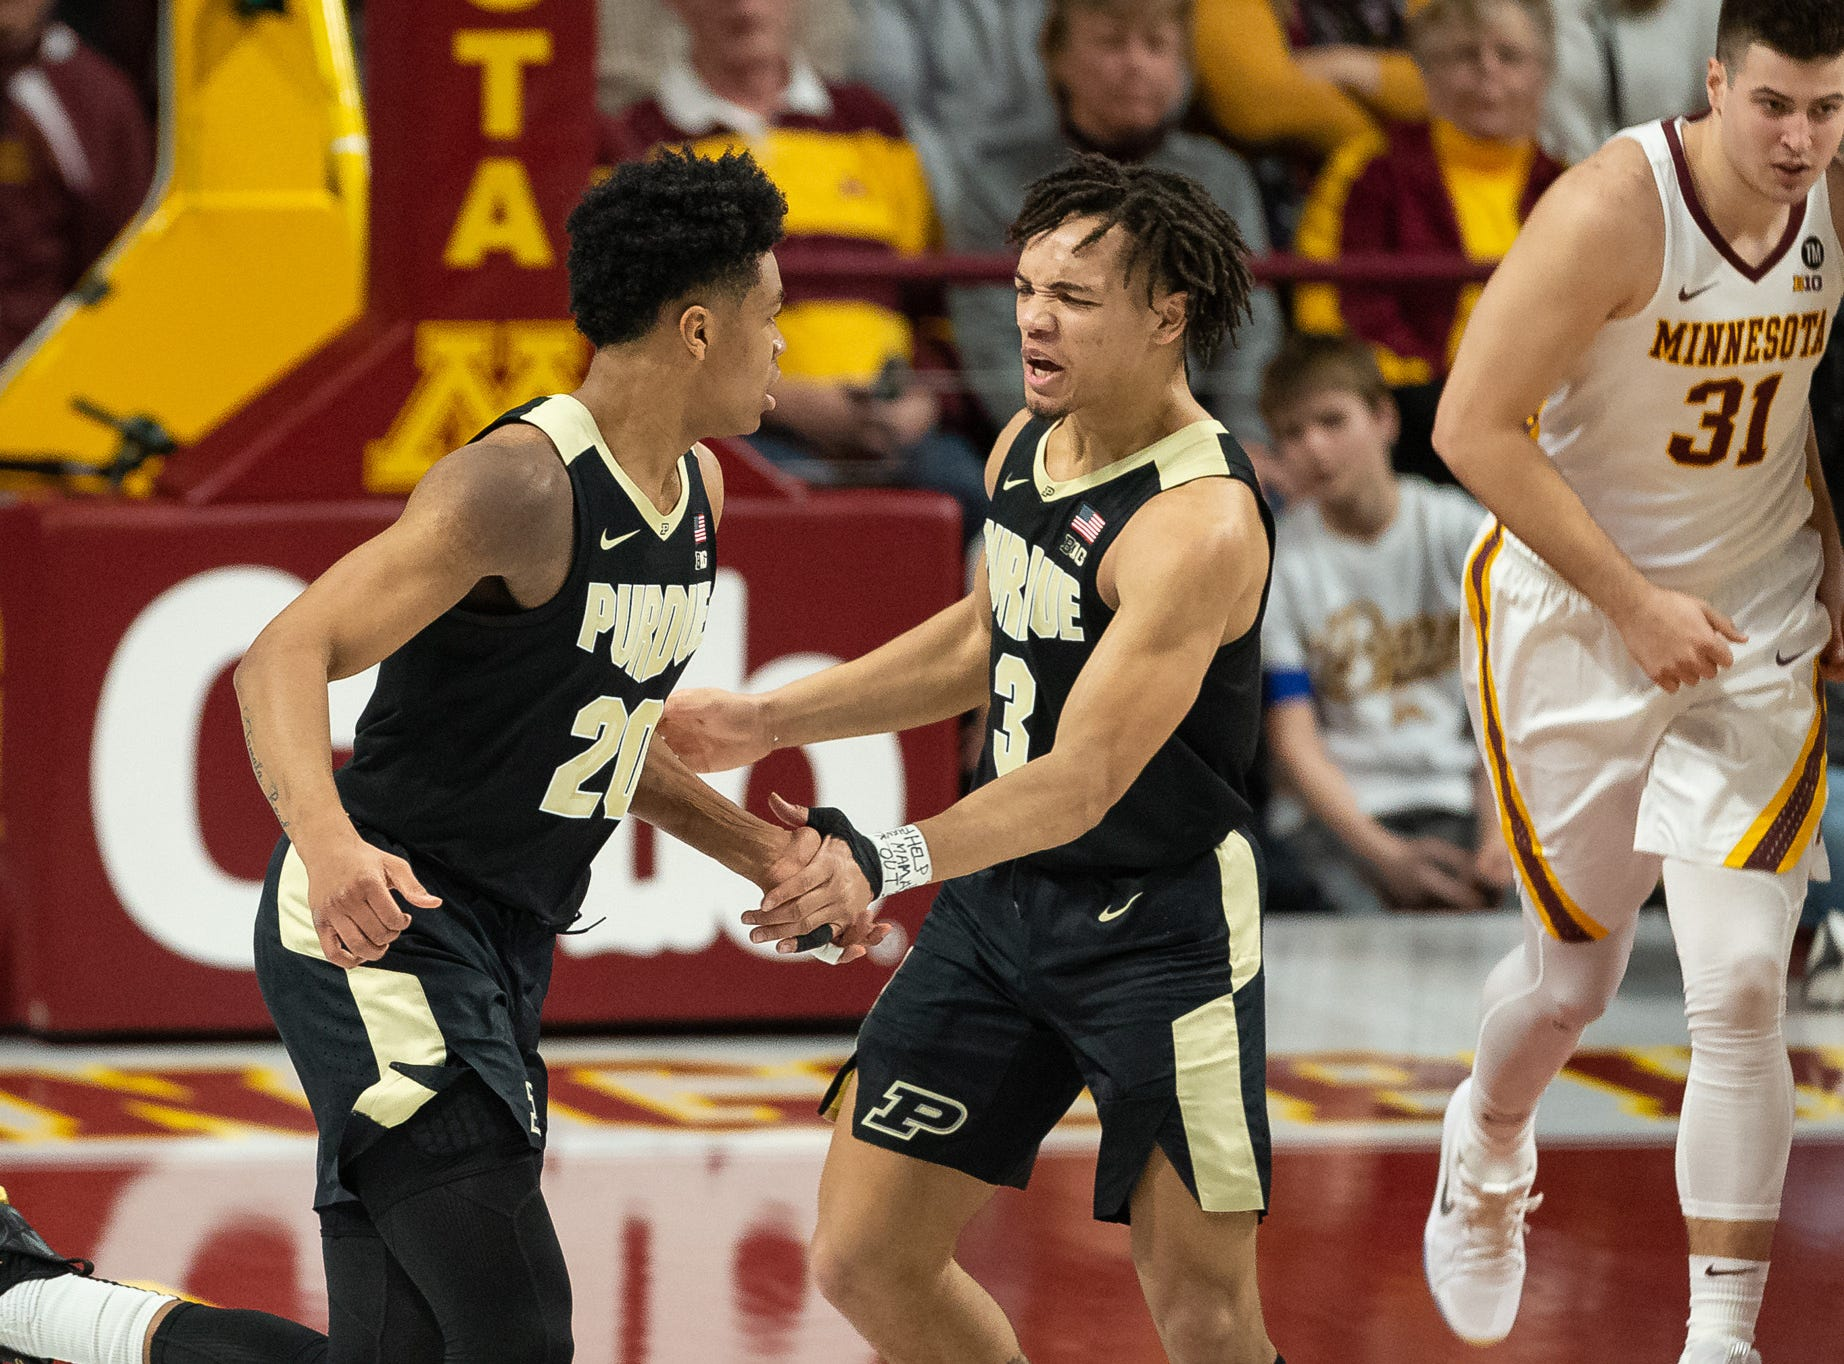 Mar 5, 2019; Minneapolis, MN, USA; Purdue Boilermakers guard Carsen Edwards (3) and guard Nojel Eastern (20) celebrate after a play during the first half against the Minnesota Gophers at Williams Arena. Mandatory Credit: Harrison Barden-USA TODAY Sports